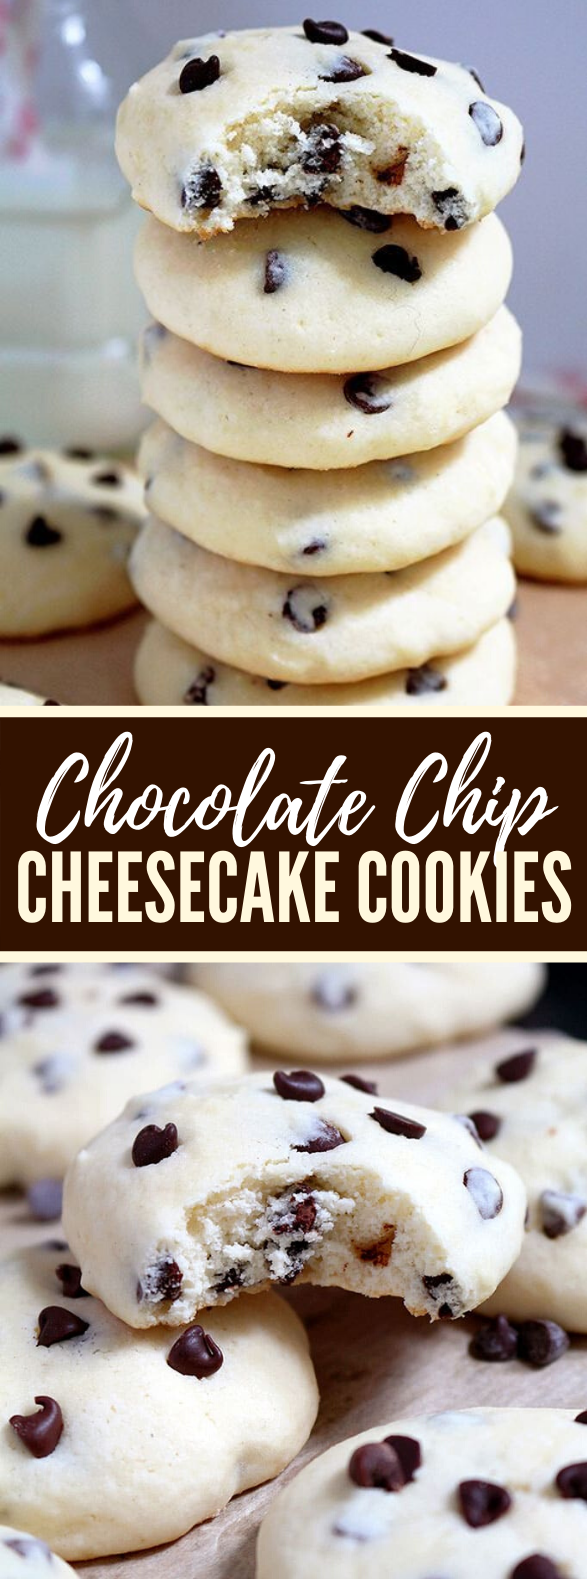 CHOCOLATE CHIP CHEESECAKE COOKIES #desserts #partyrecipe